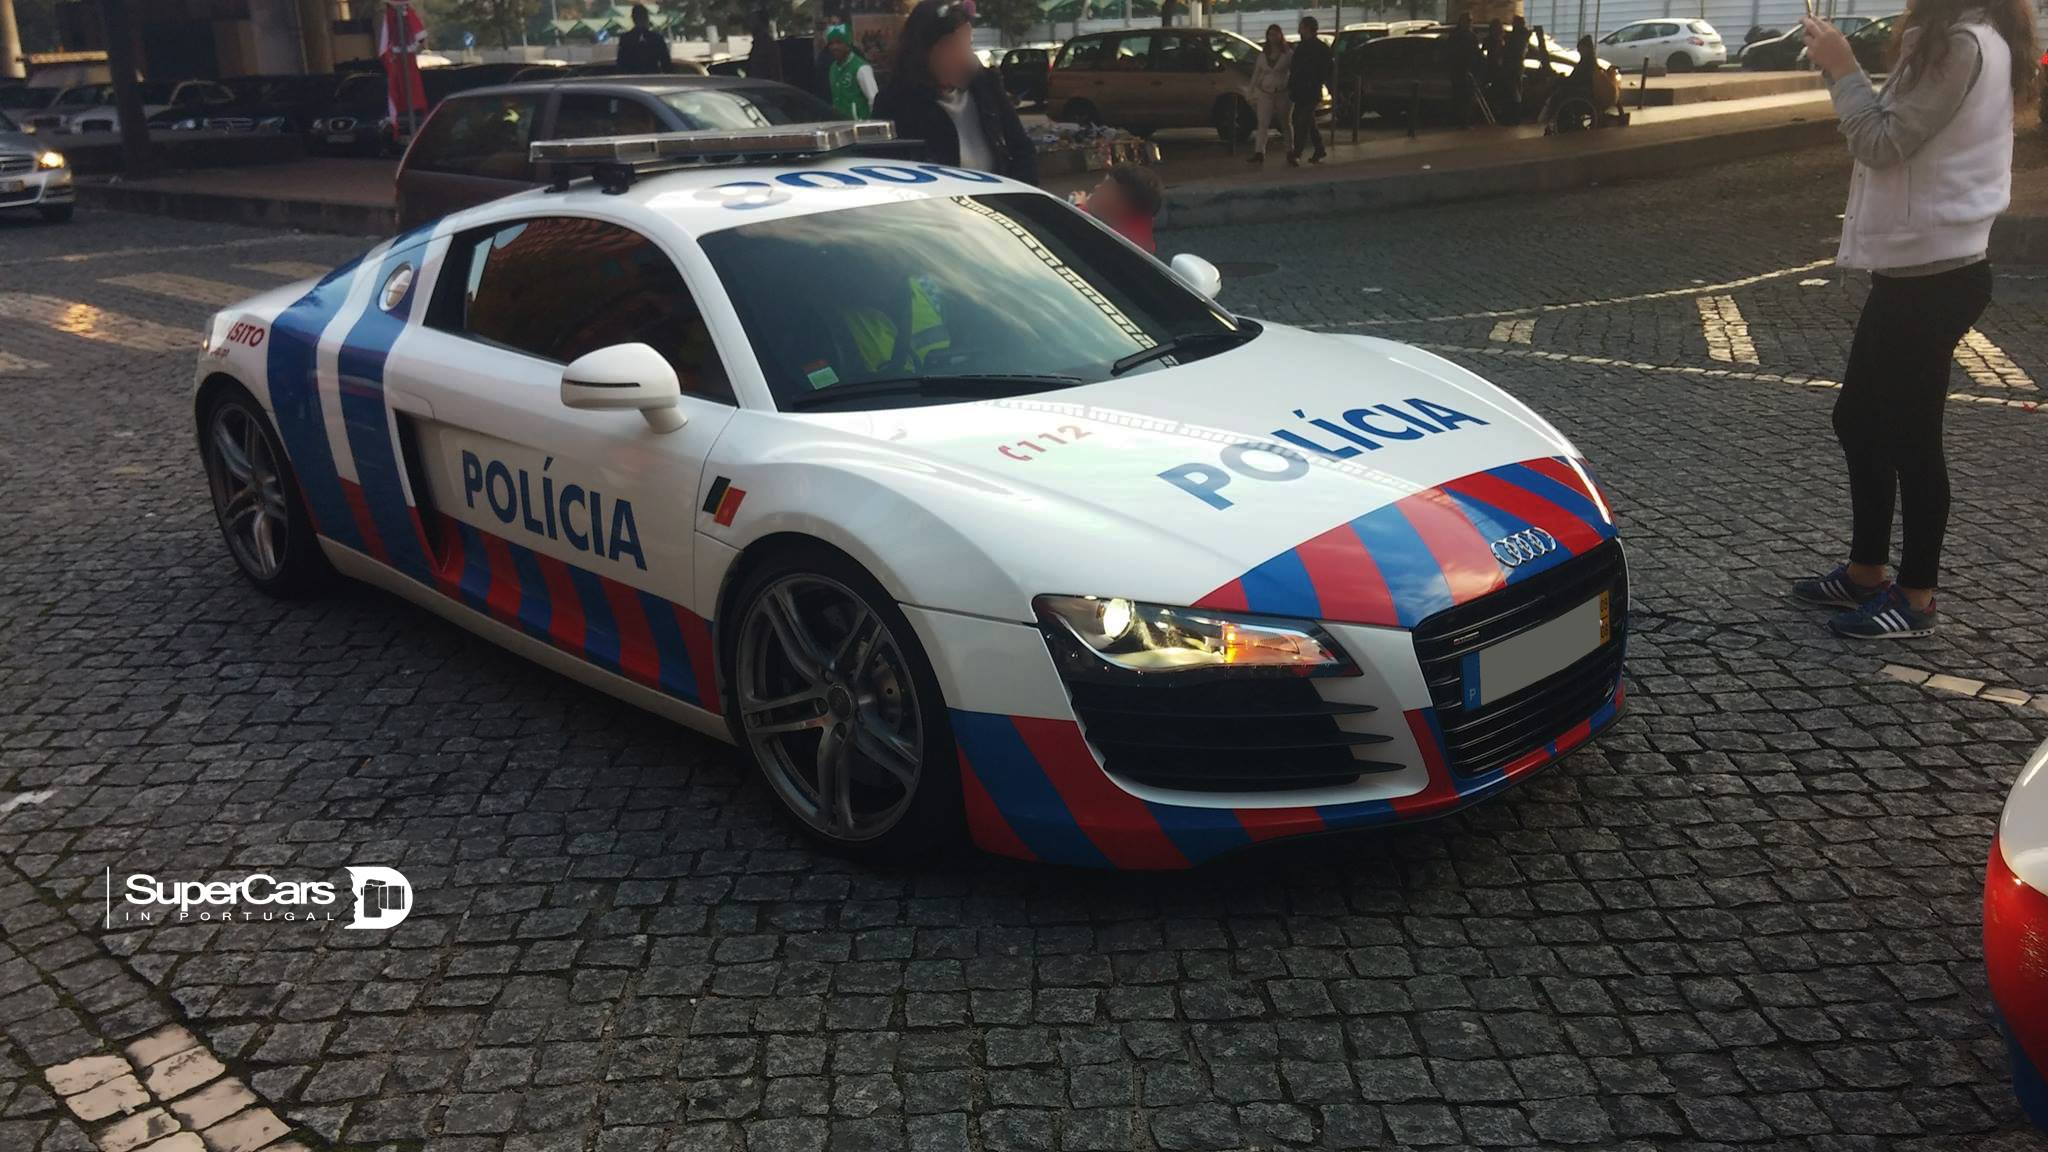 The 10 Coolest Undercover Cop Cars In The World